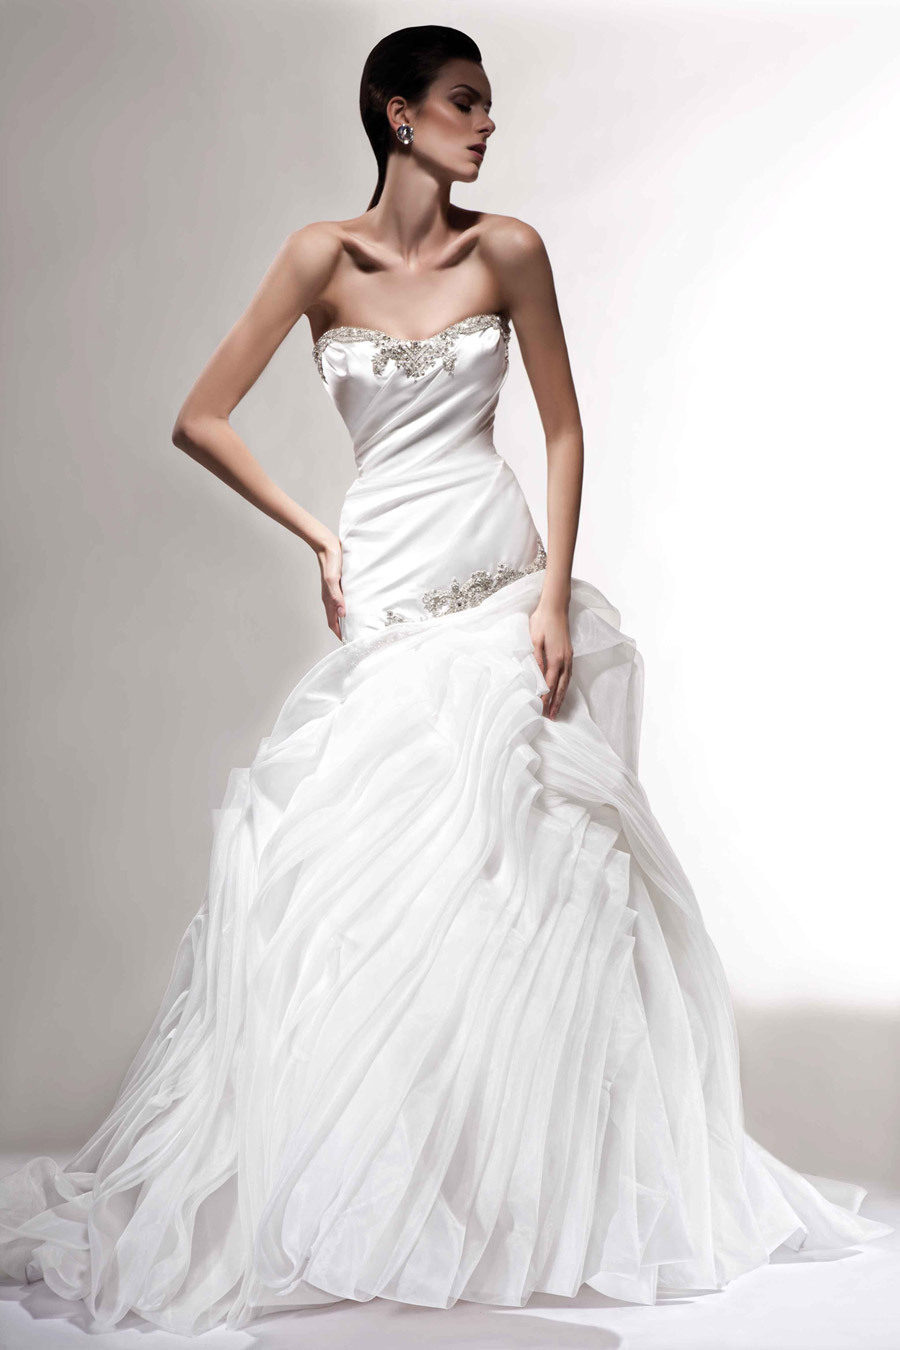 Covetable-wedding-gowns-2013-bridal-victor-harper-couture-102.full